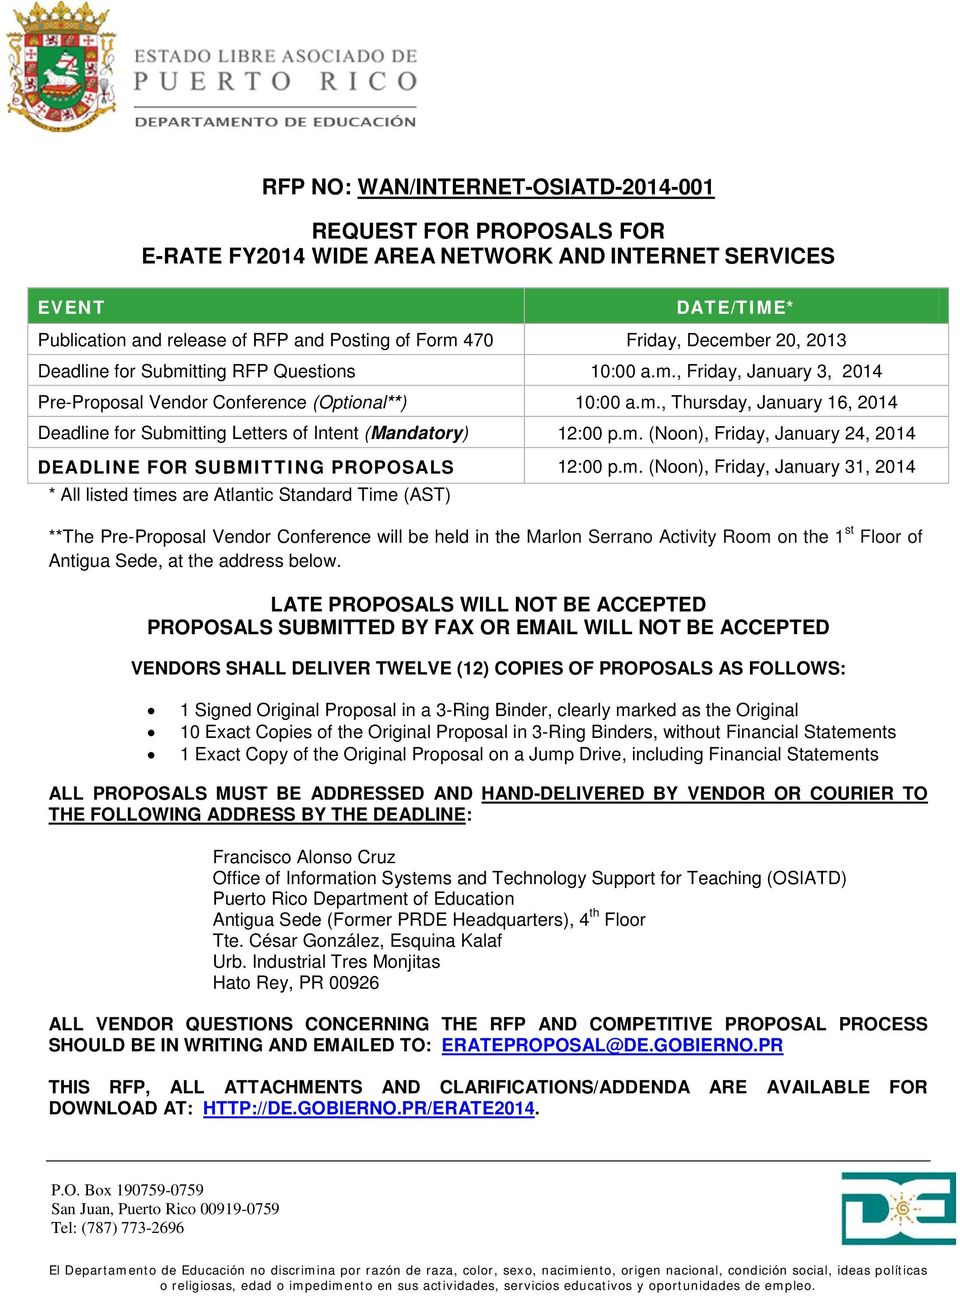 m. (Noon), Friday, January 24, 2014 DEADLINE FOR SUBMITTING PROPOSALS 12:00 p.m. (Noon), Friday, January 31, 2014 * All listed times are Atlantic Standard Time (AST) **The Pre-Proposal Vendor